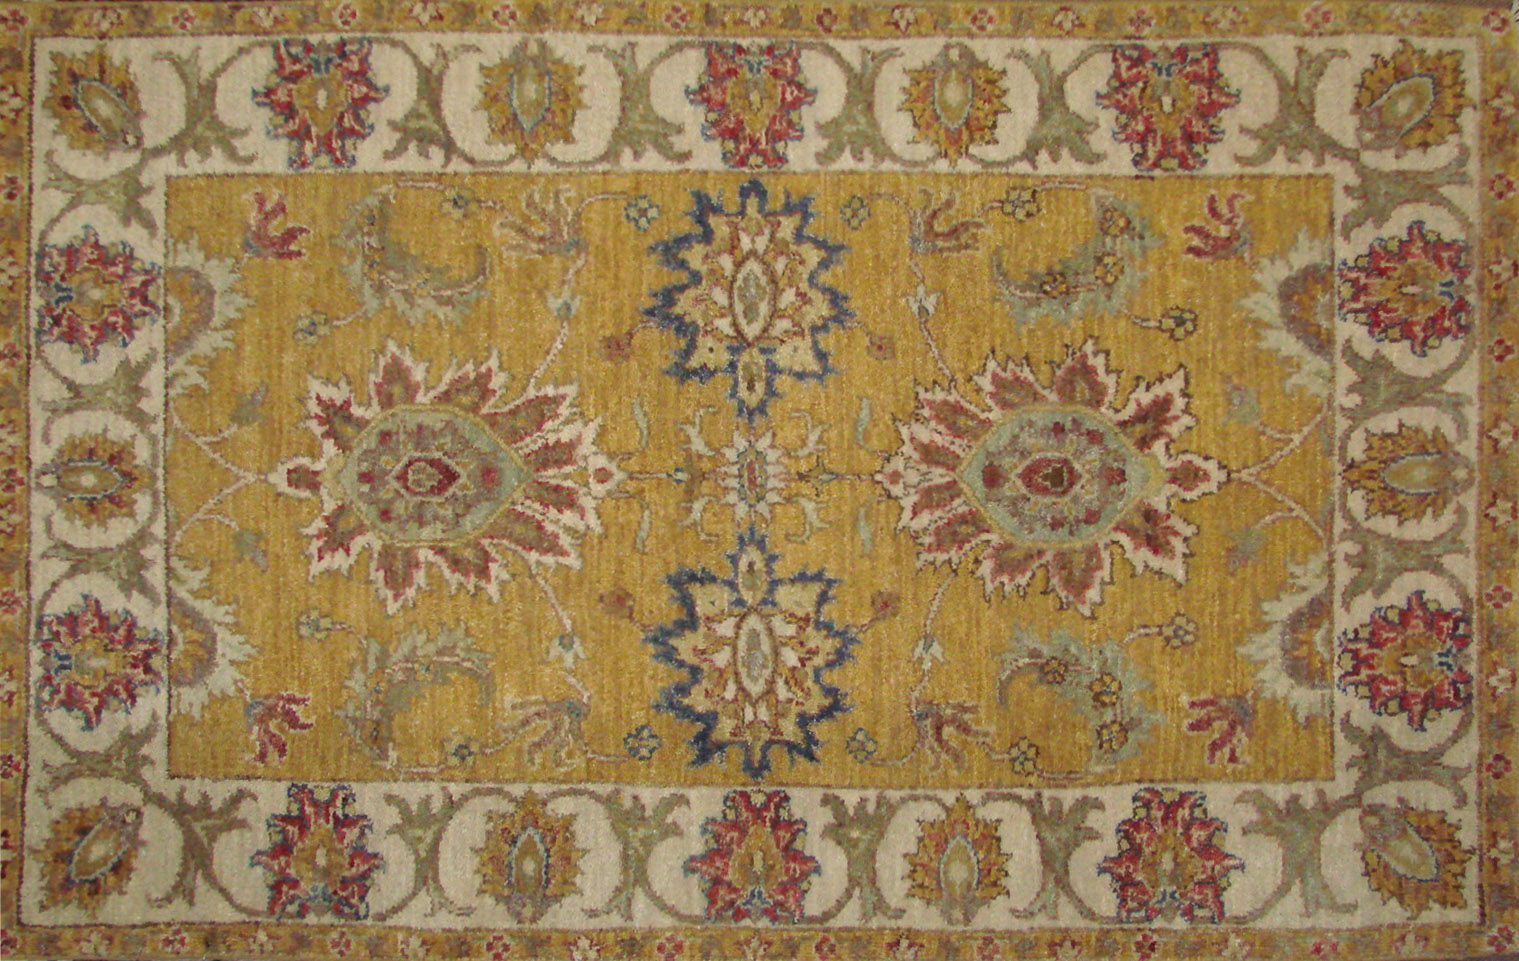 2X4 Traditional Hand Knotted Wool Area Rug - MR021763